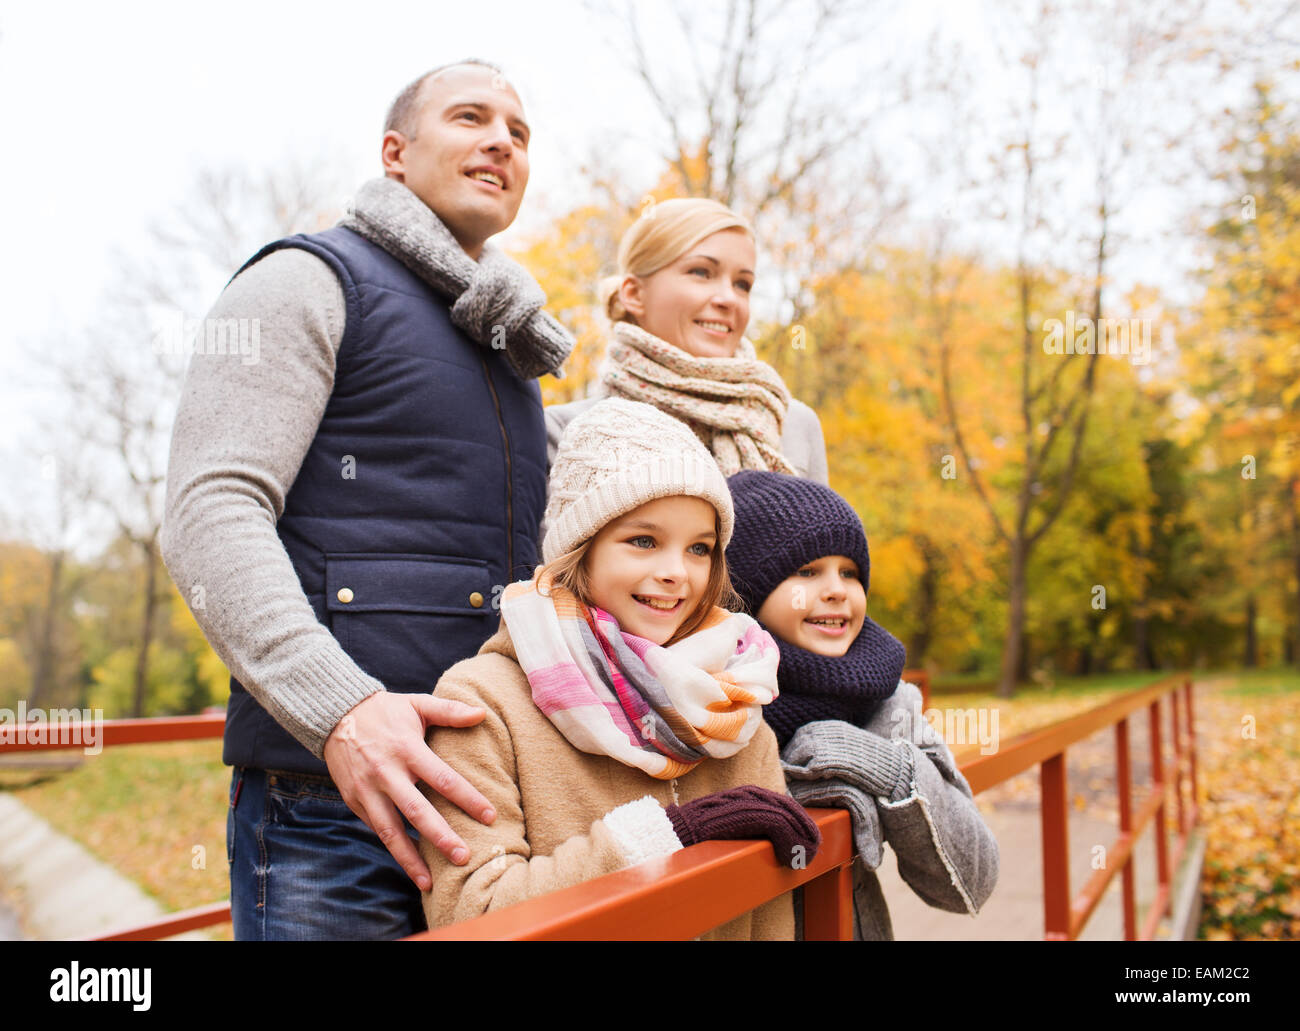 happy family in autumn park - Stock Image